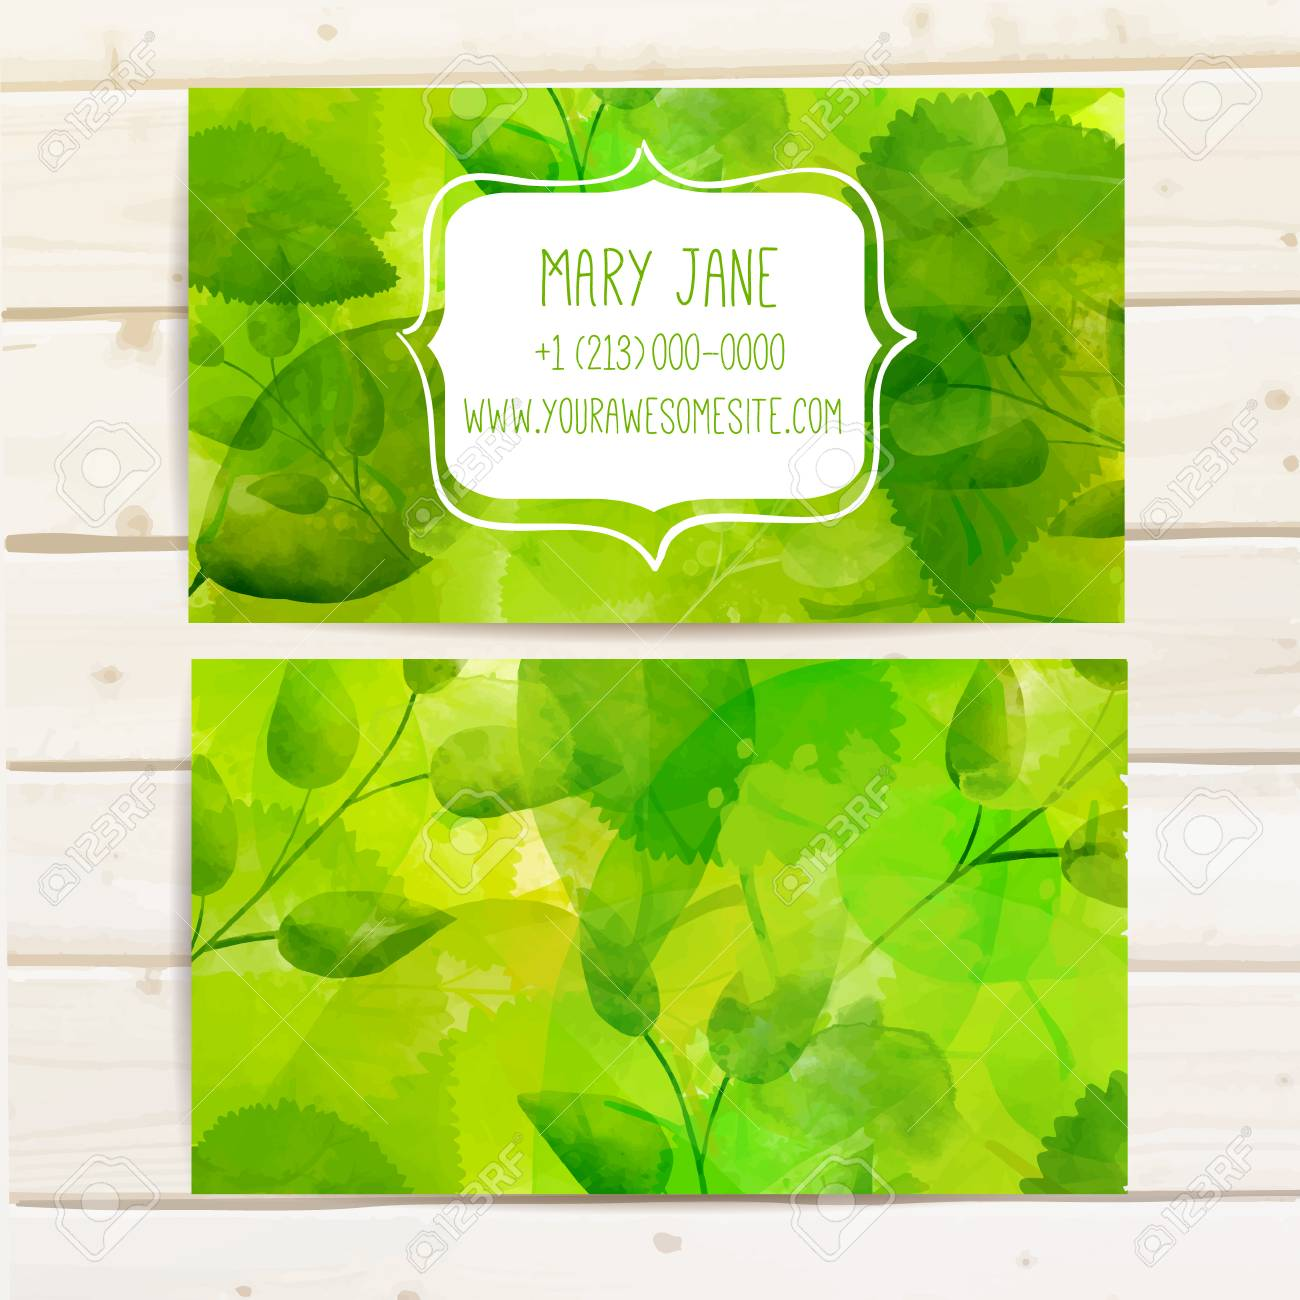 Nature creative business card template with artistic vector design nature creative business card template with artistic vector design green leaves with texture stock reheart Images